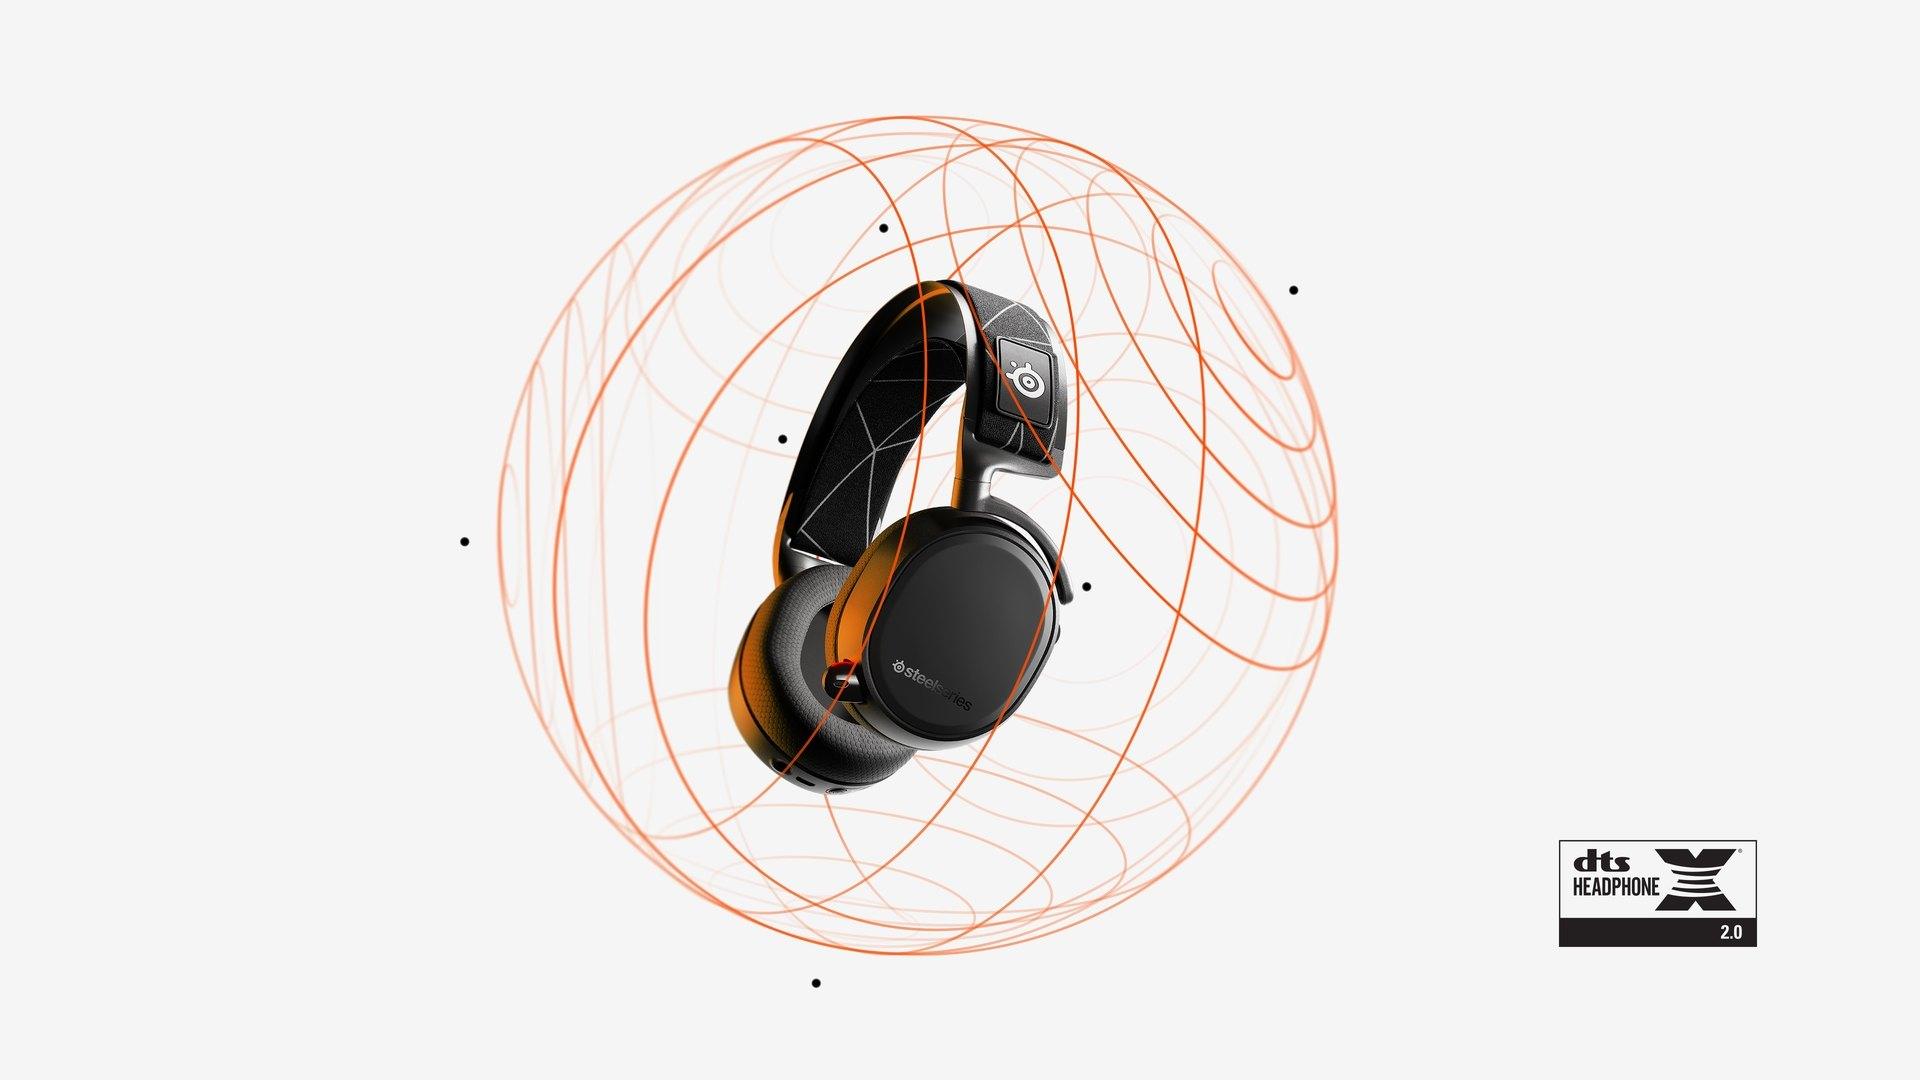 DTS Headphone X 2.0 surround sound